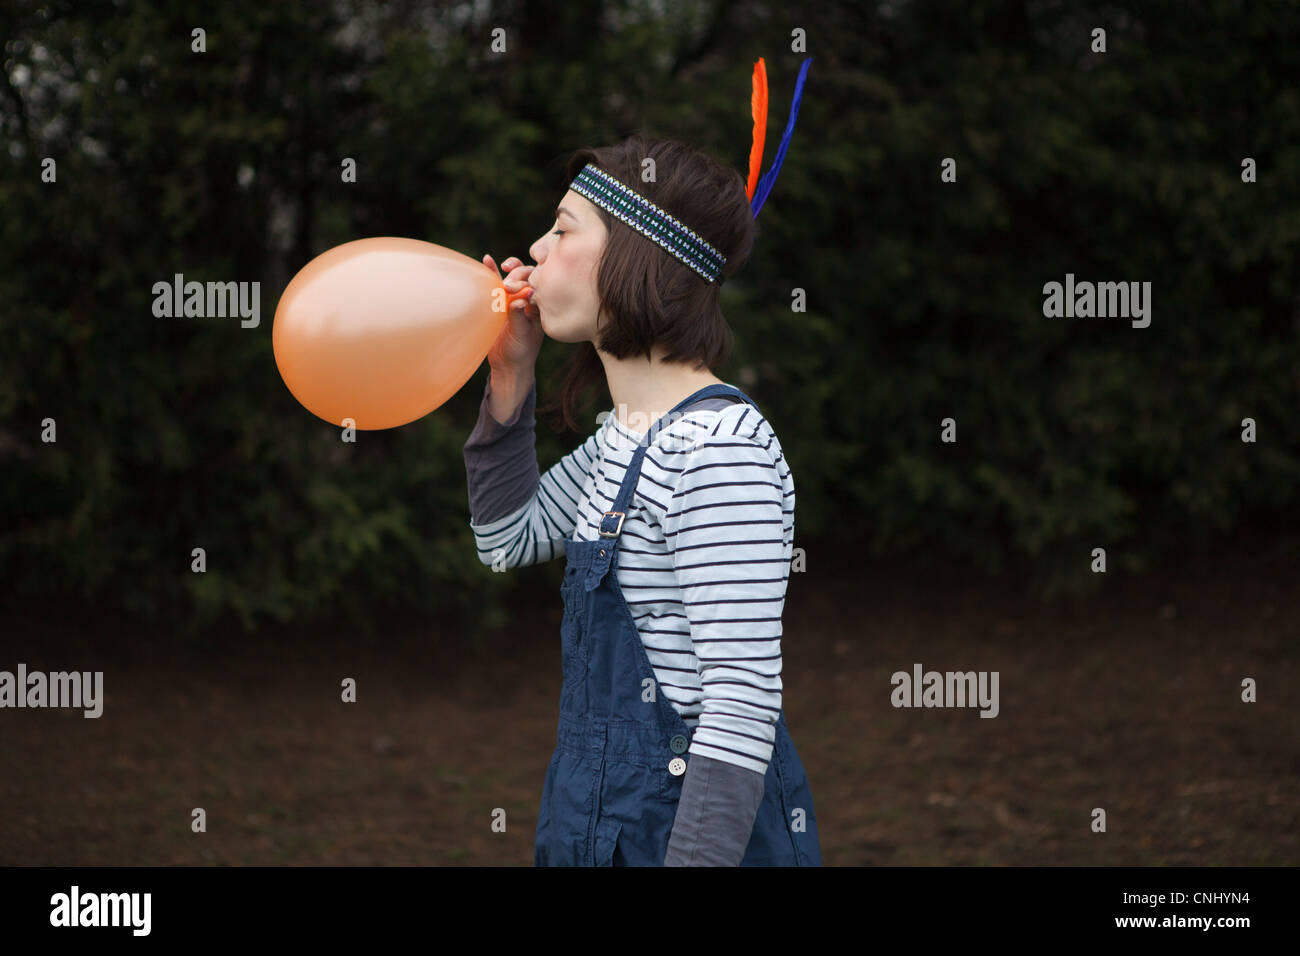 Young woman in headdress, blowing up a balloon - Stock Image